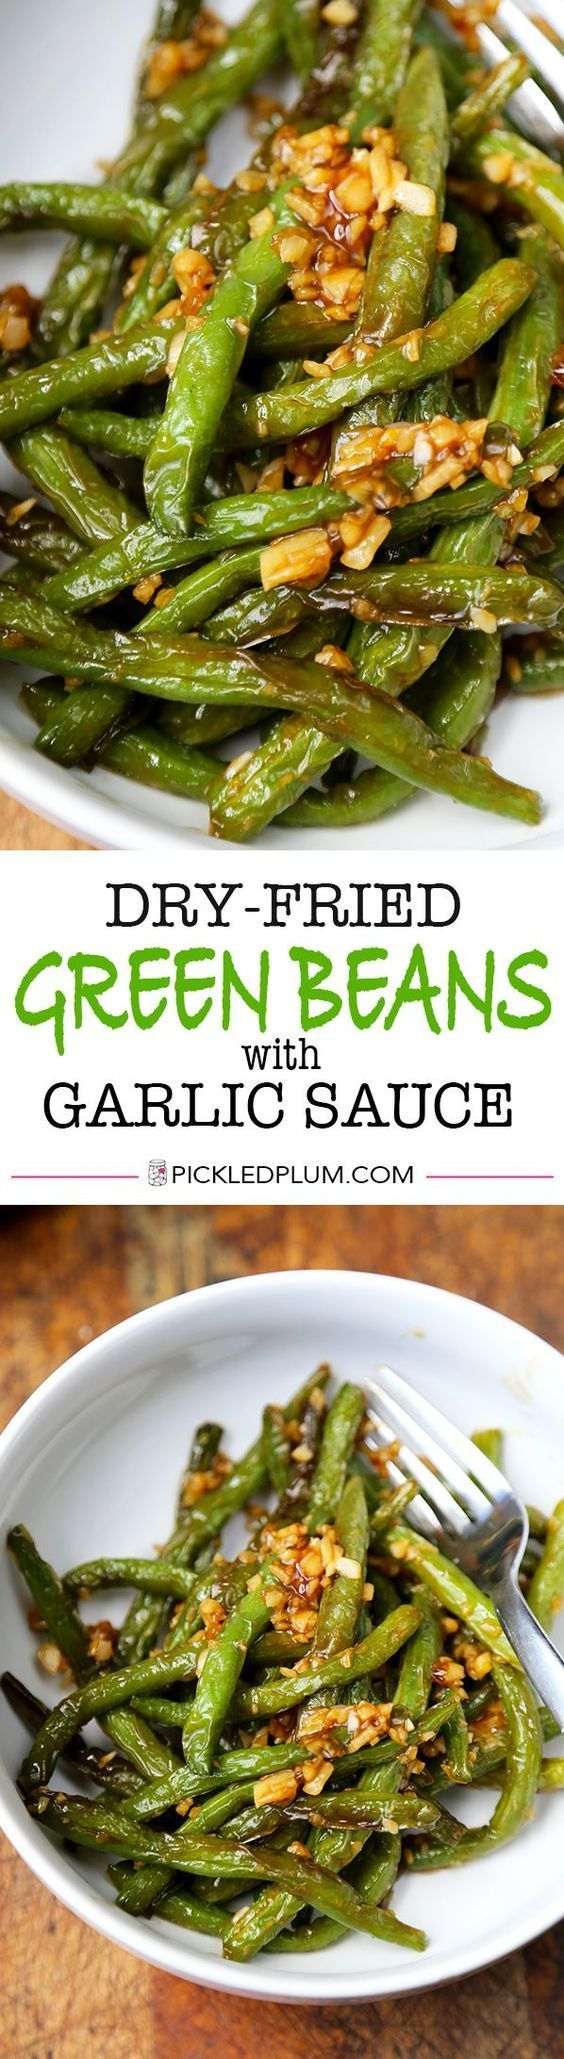 Dry Fried Green Beans With Garlic Sauce